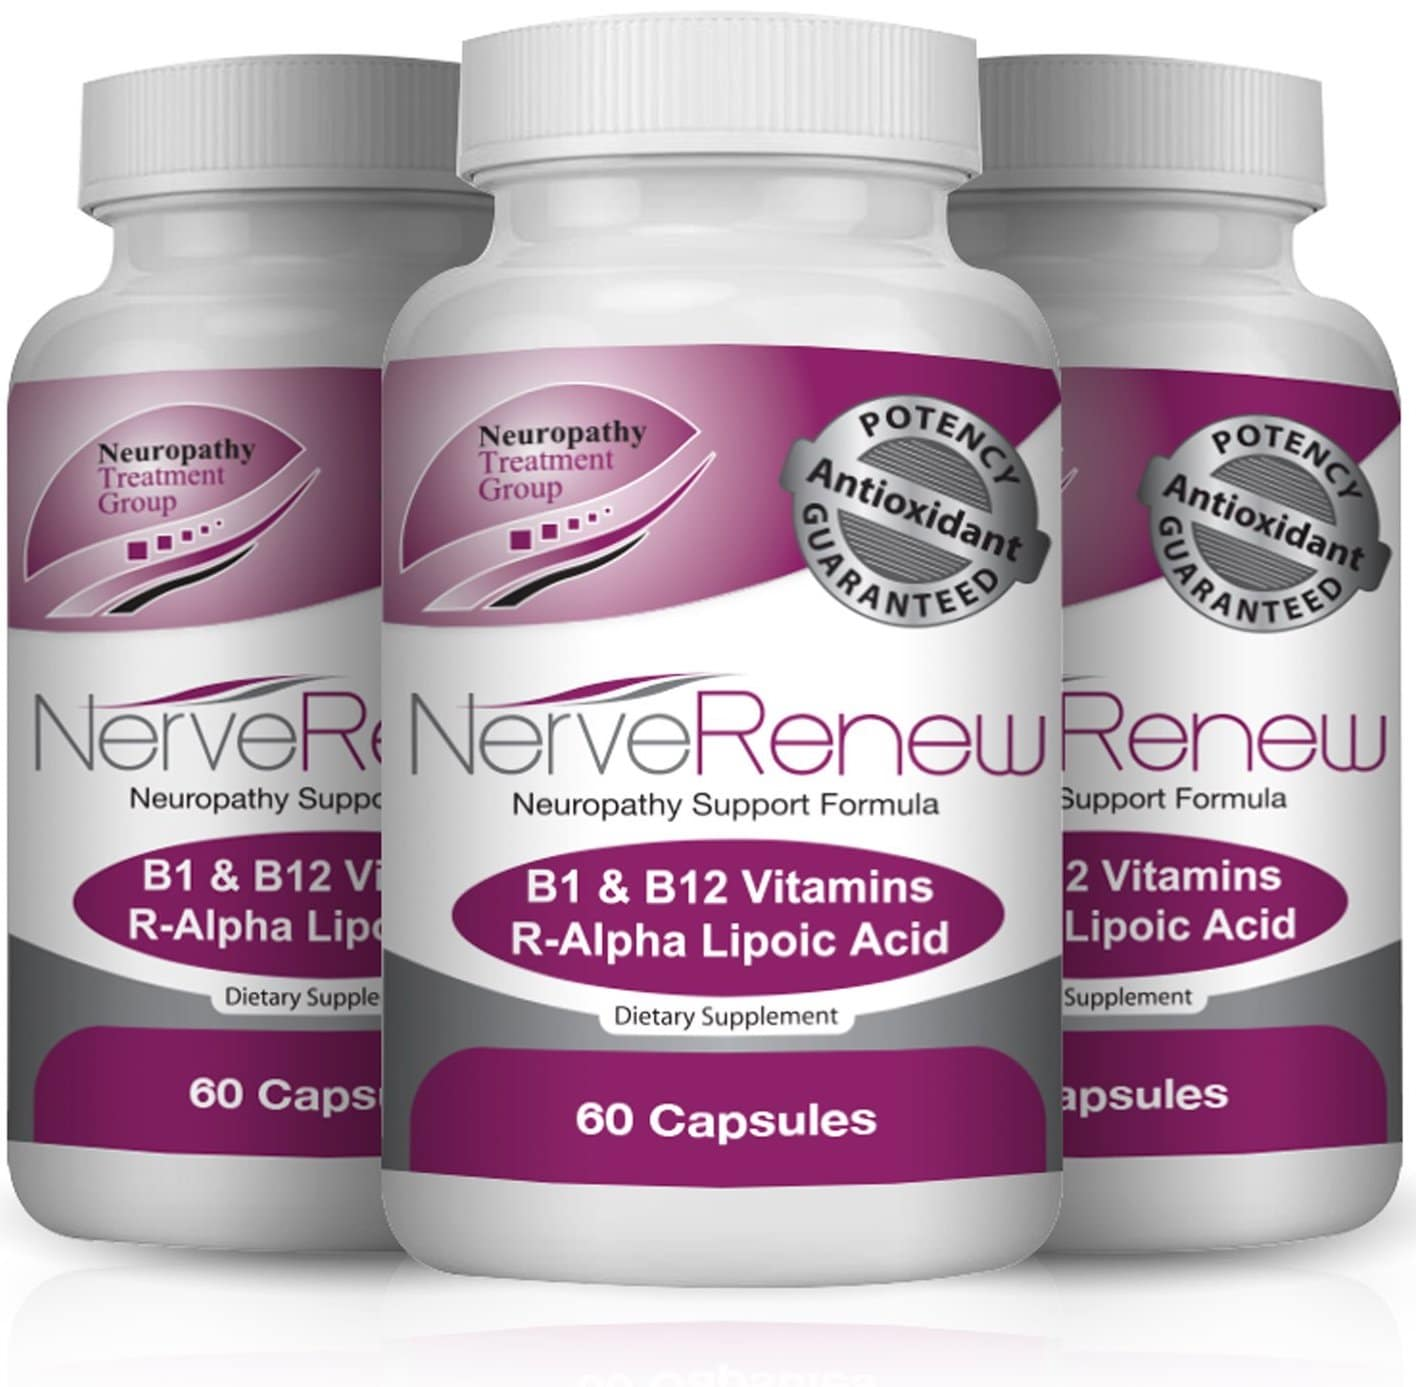 3 bottles of Nerve Renew package